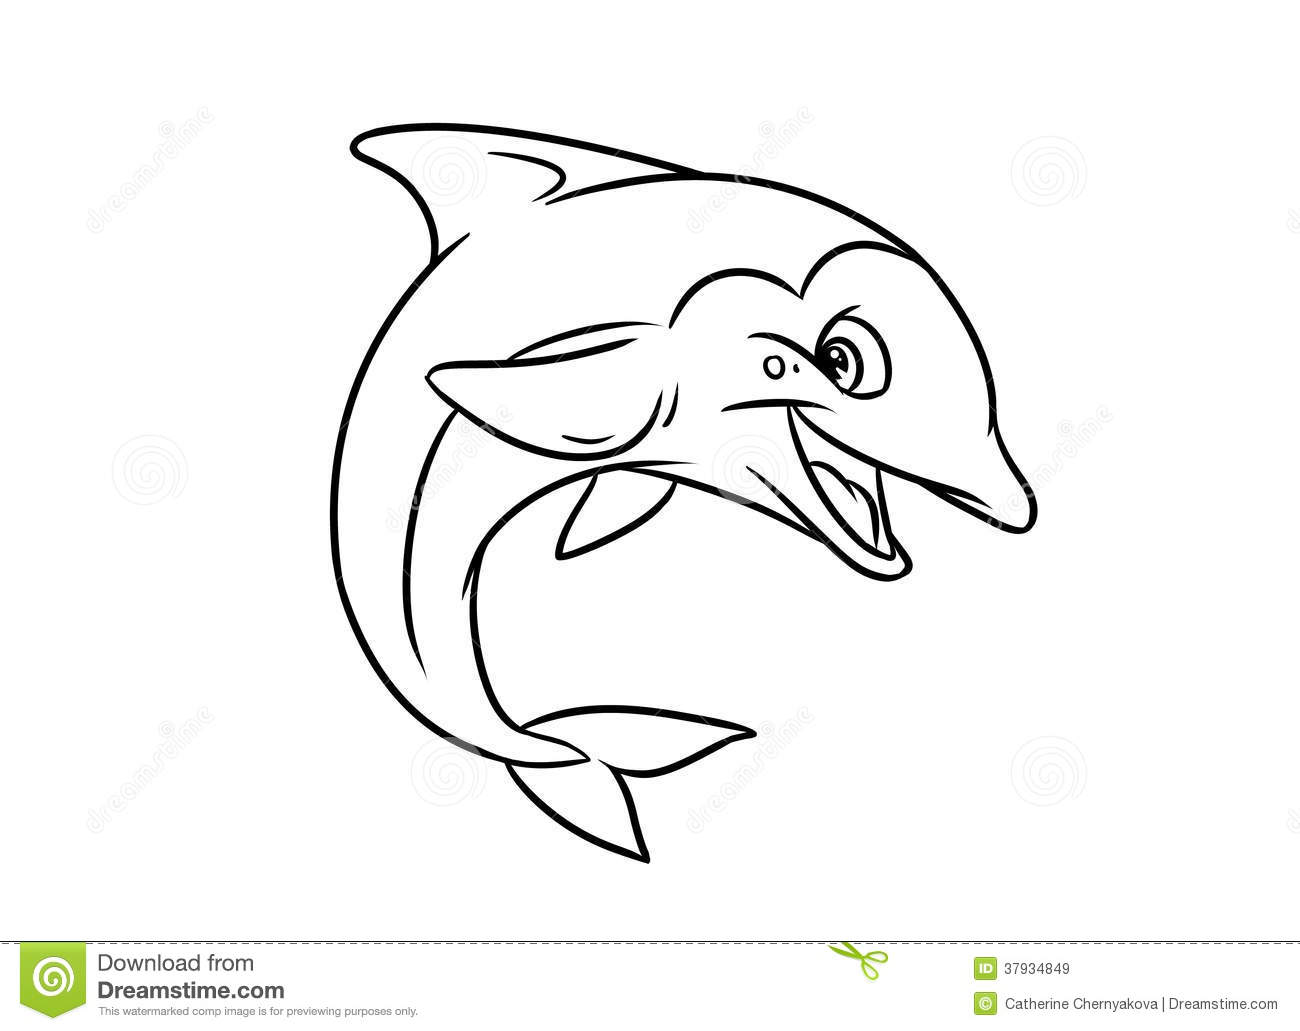 Merry Dolphin Illustration Coloring Pages Royalty Free